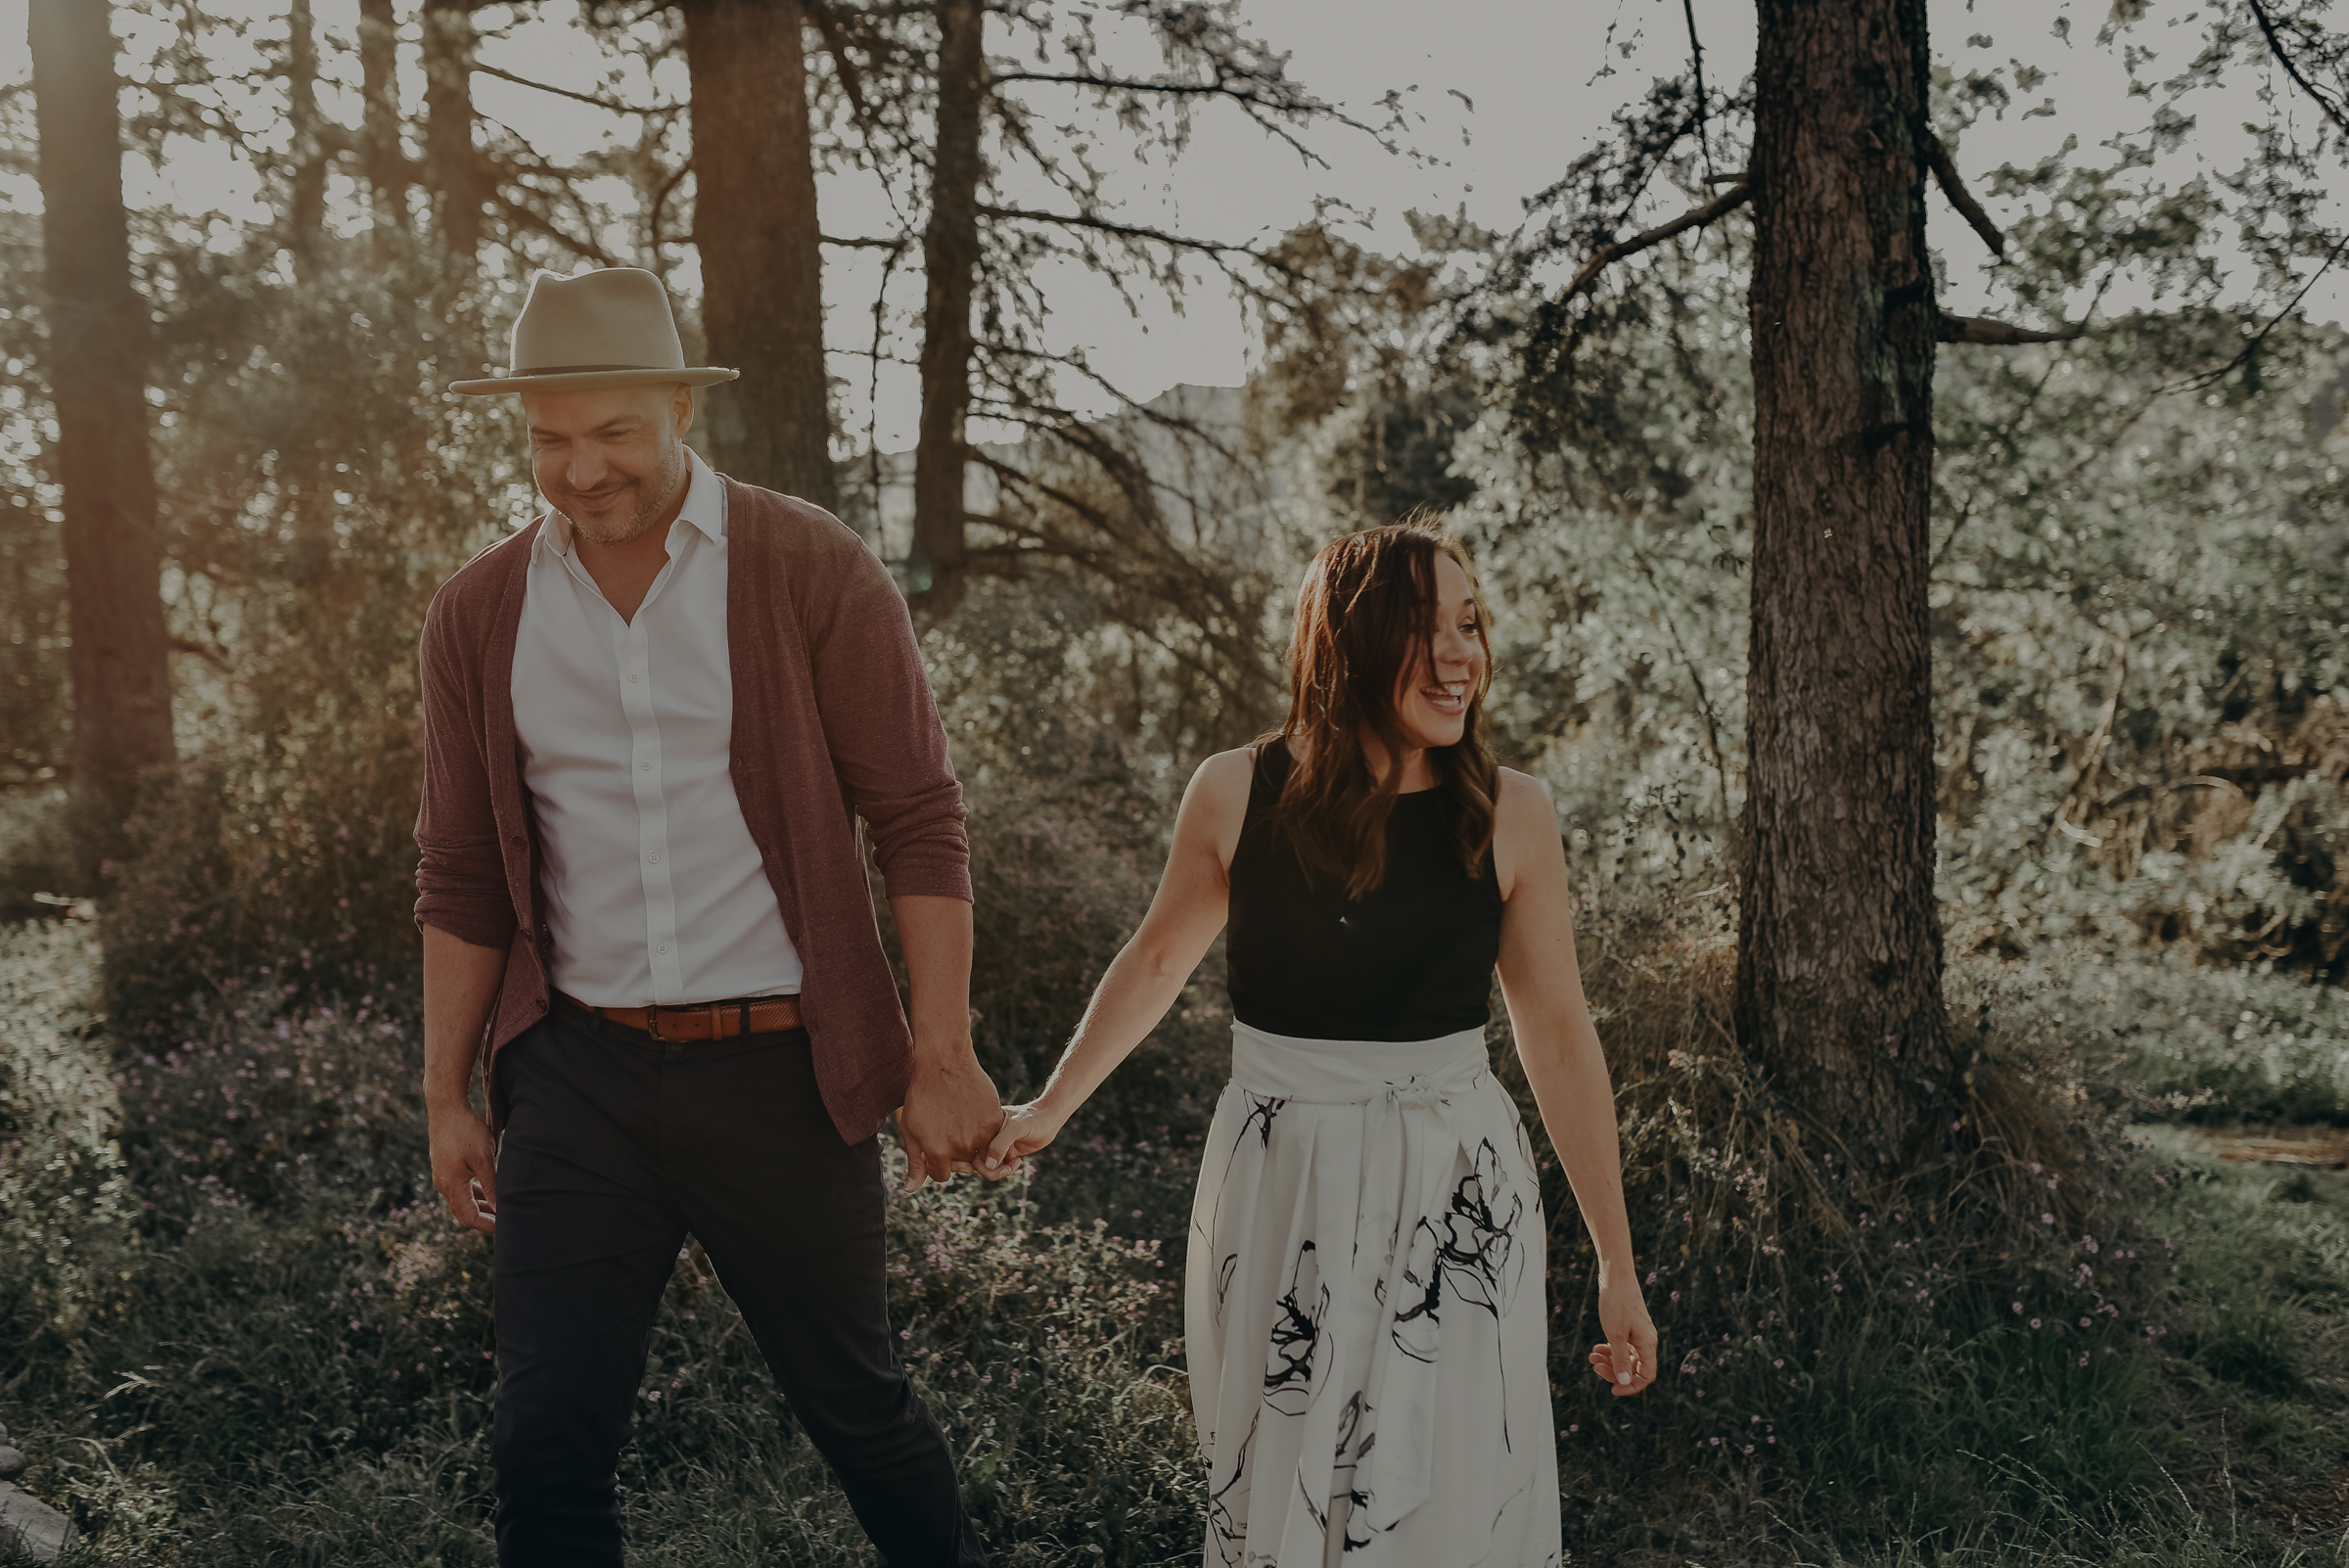 Los Angeles Wedding Photographers - Griffith Park Engagement - IsaiahAndTaylor.com-007.jpg